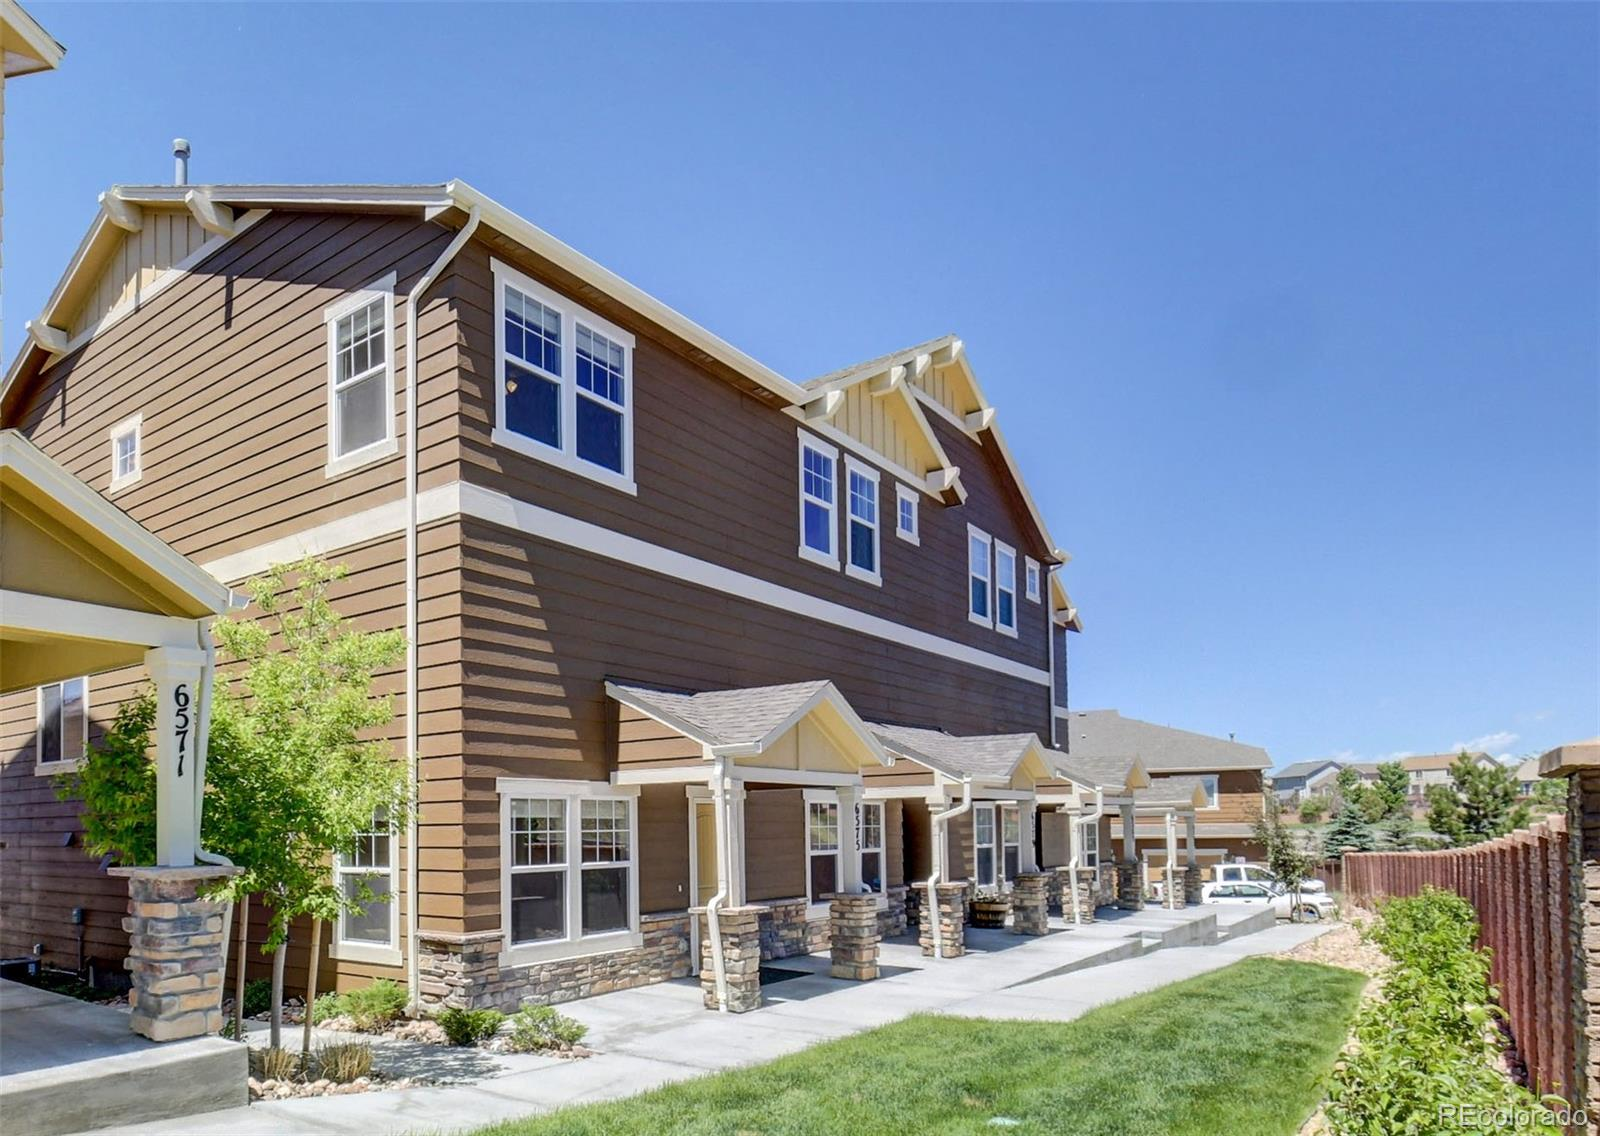 MLS# 4703505 - 1 - 6575 Pennywhistle Point, Colorado Springs, CO 80923